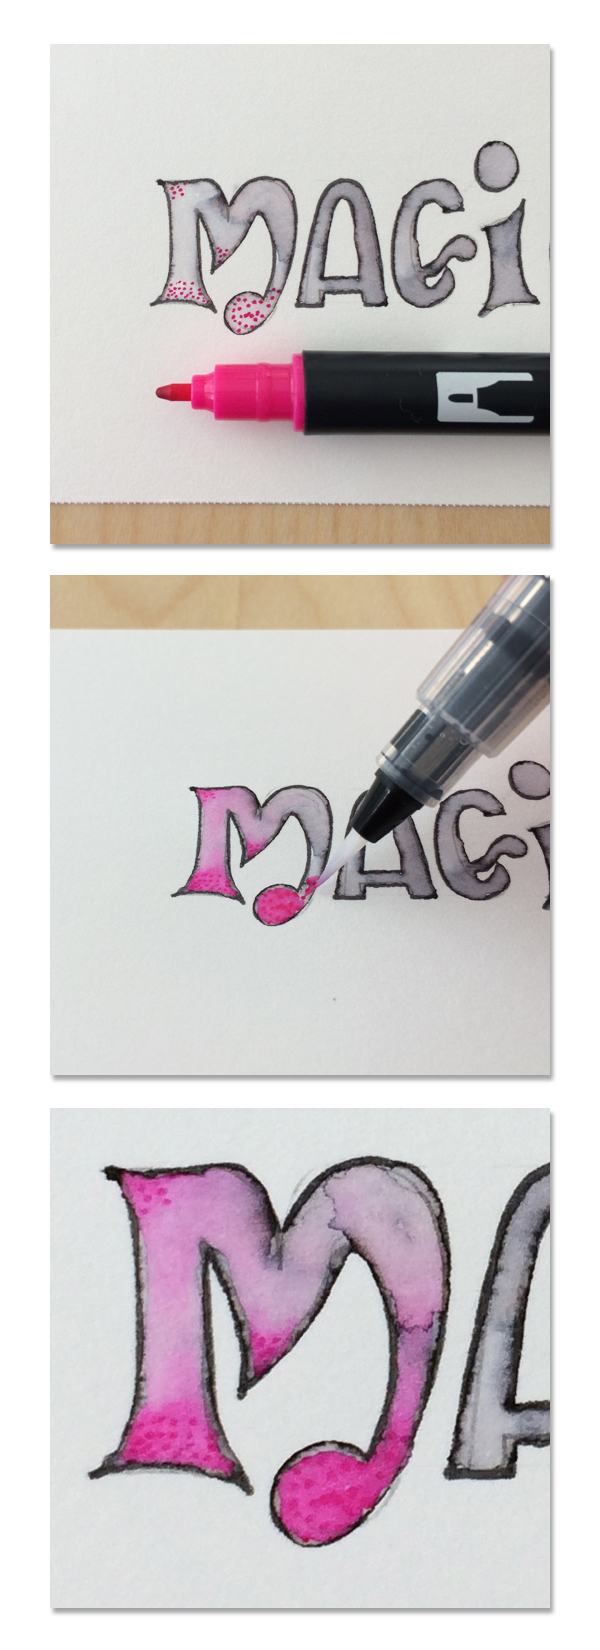 Add color inside lettering